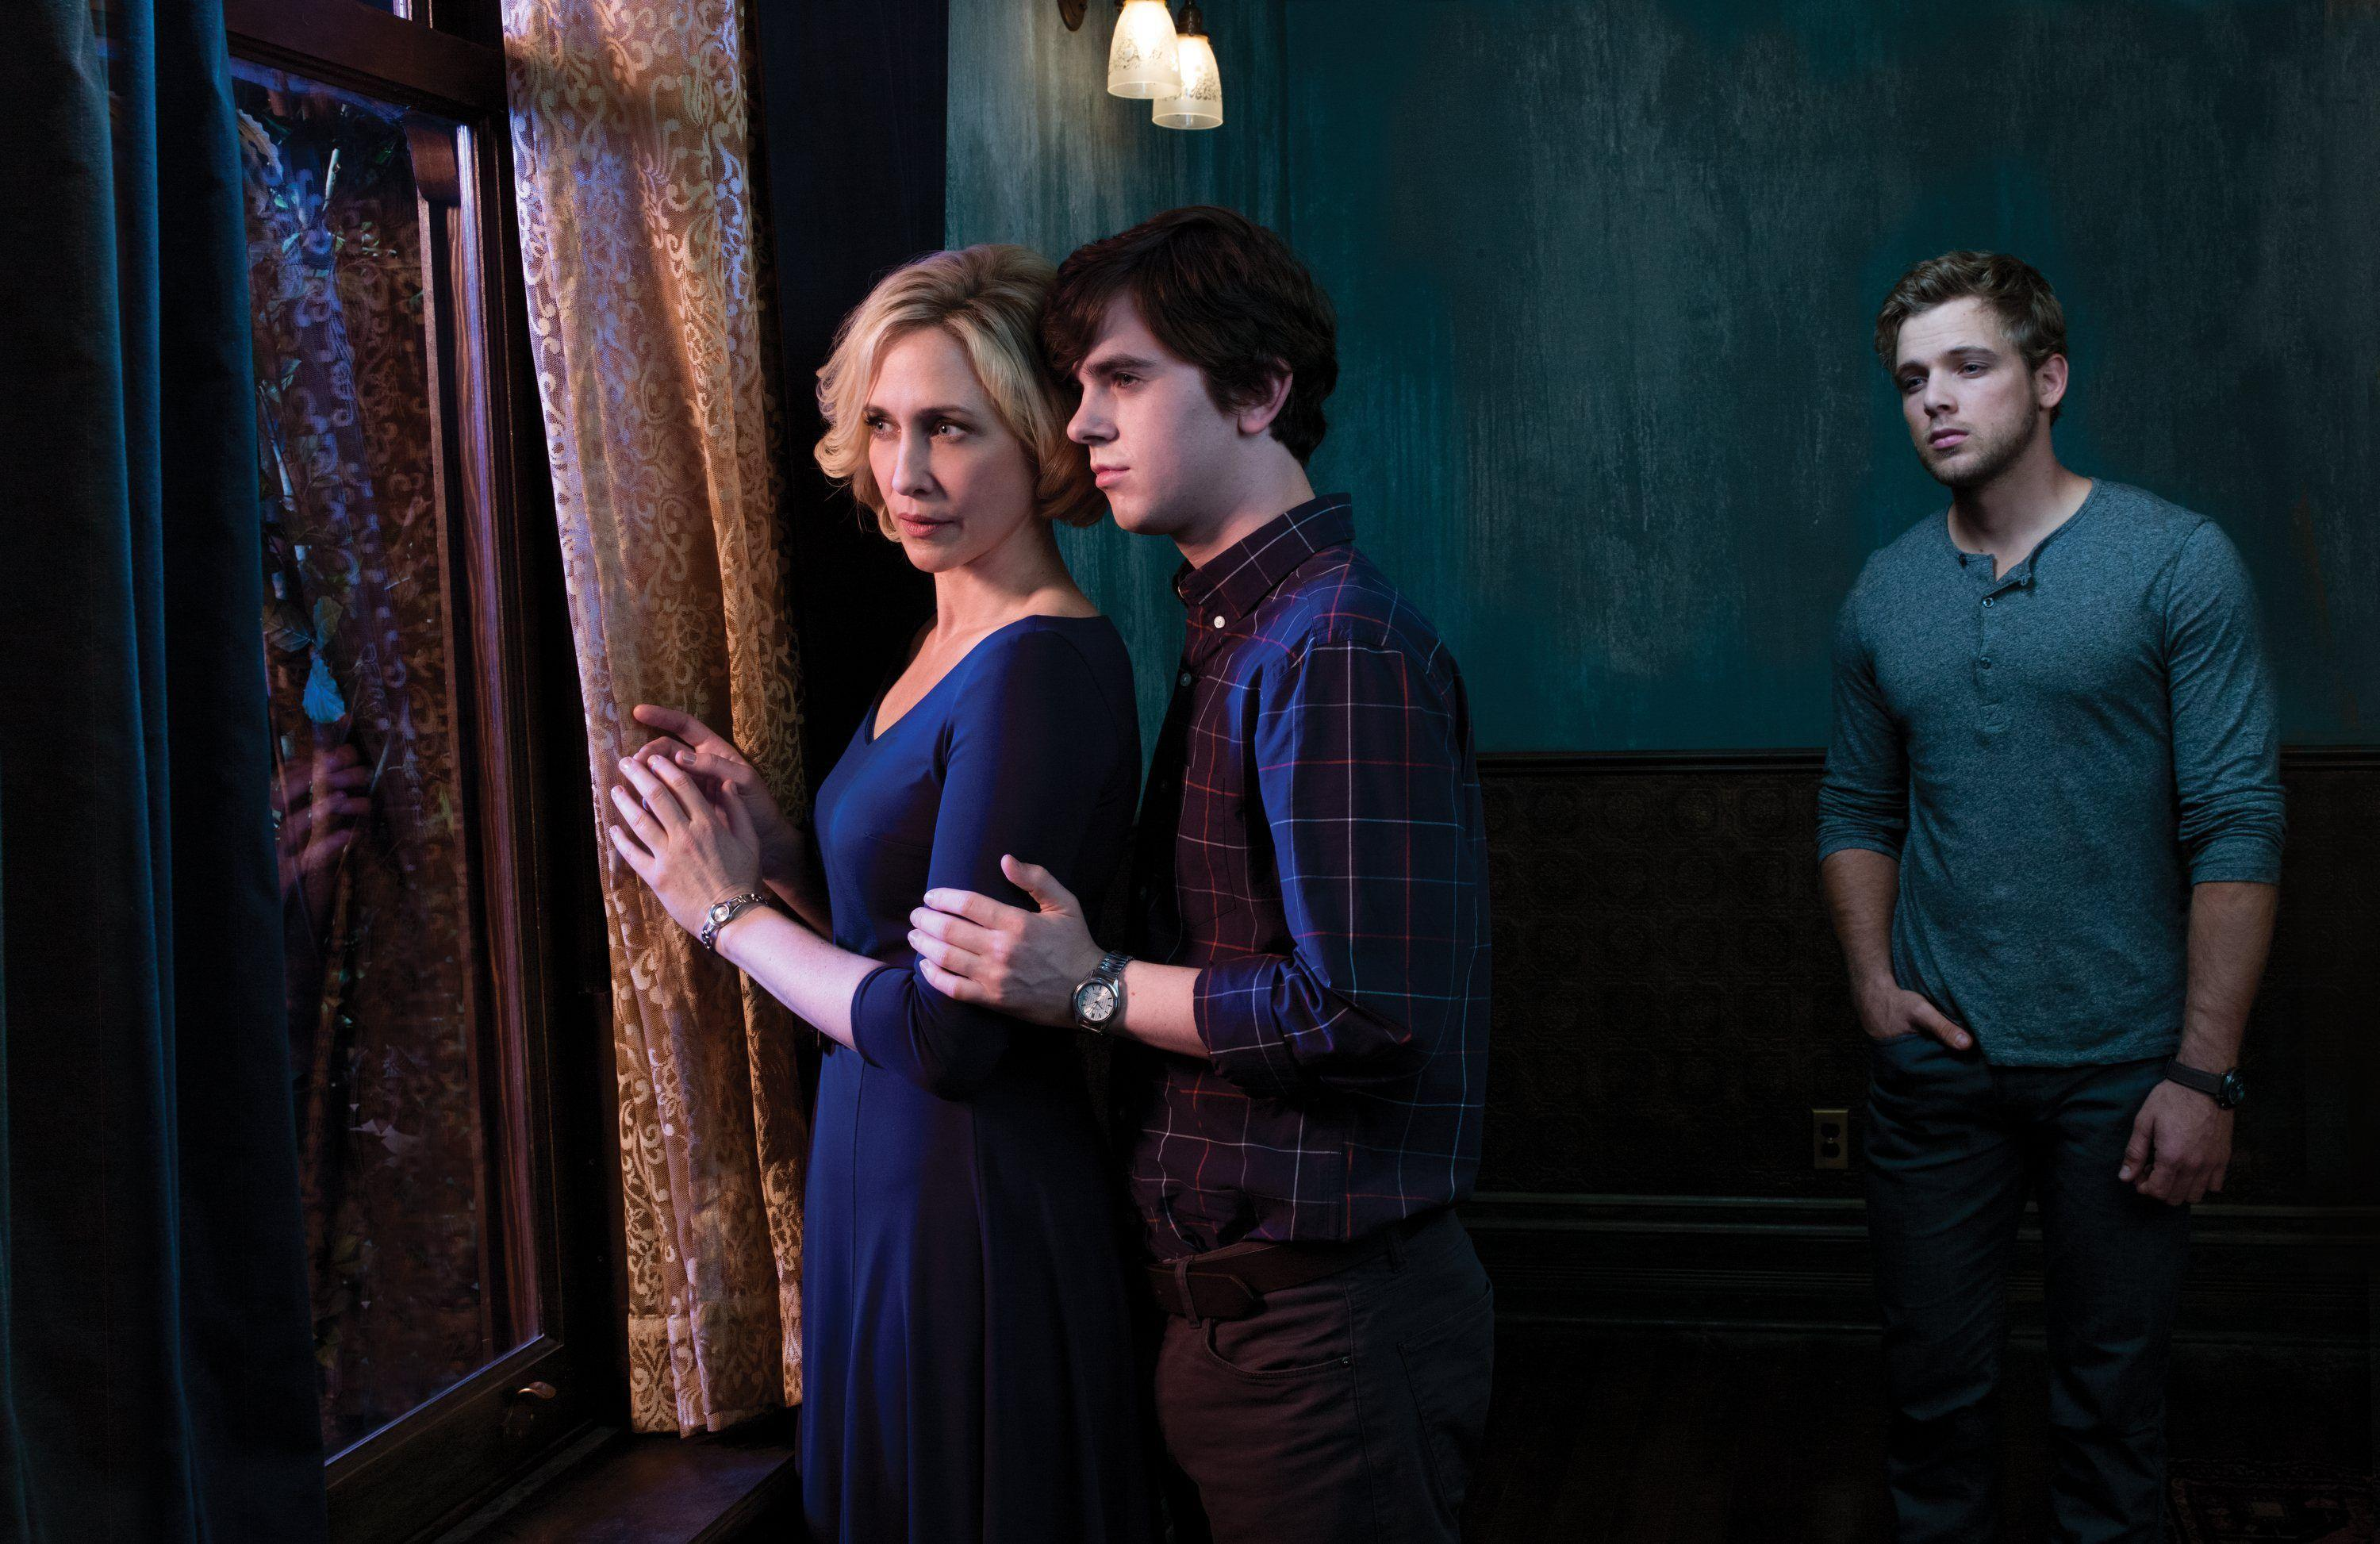 Get More Bates Motel Wallpapers